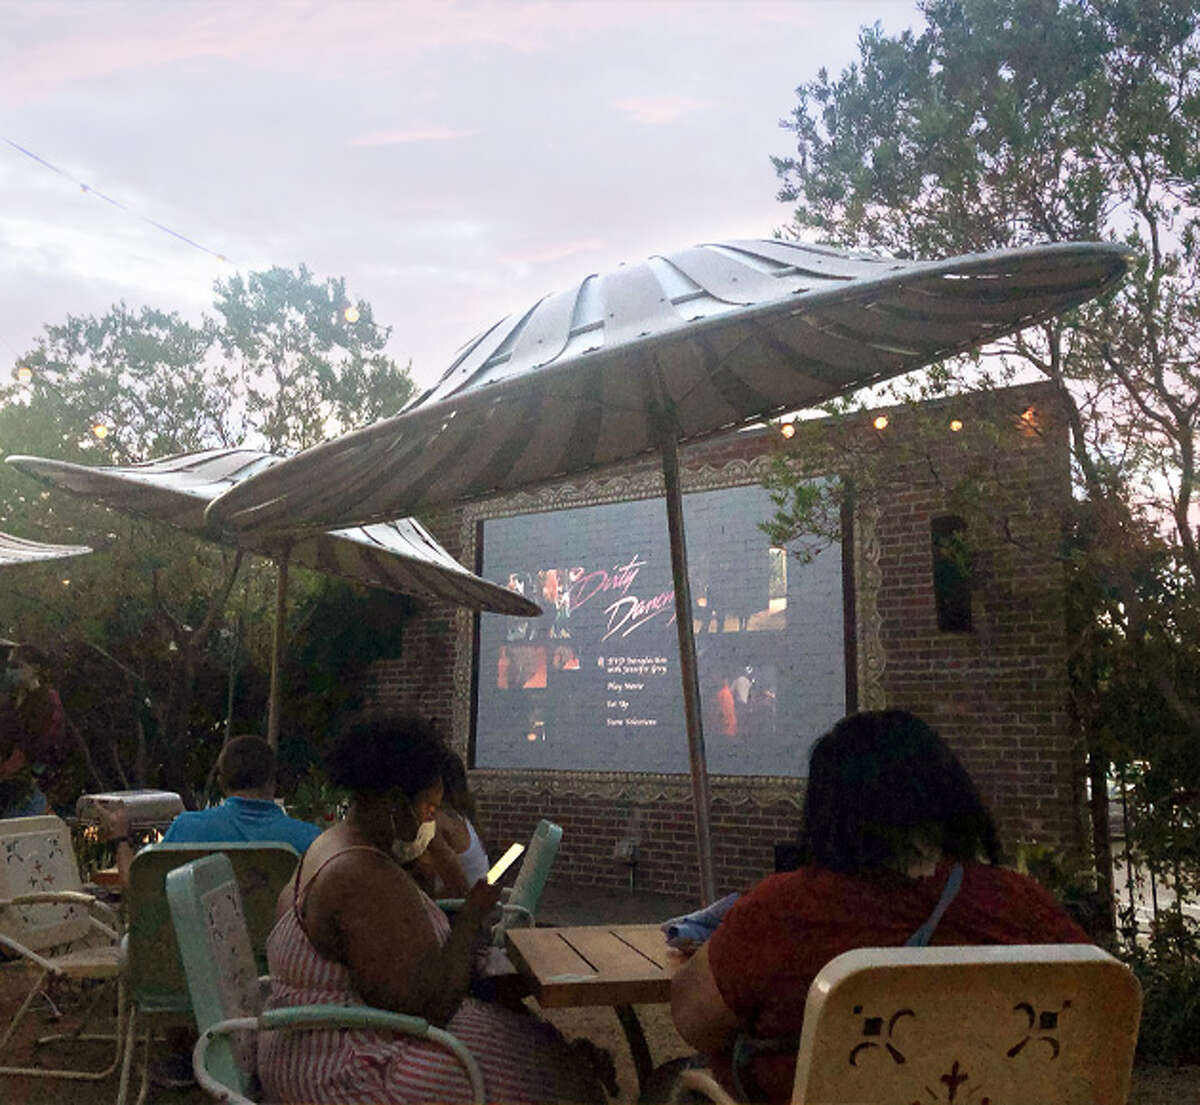 Ida Claire San Antonio, a popular Southern food brunch spot at the Alamo Quarry Market, will host an outdoor movie night on its patio every Thursday for the rest of the year.